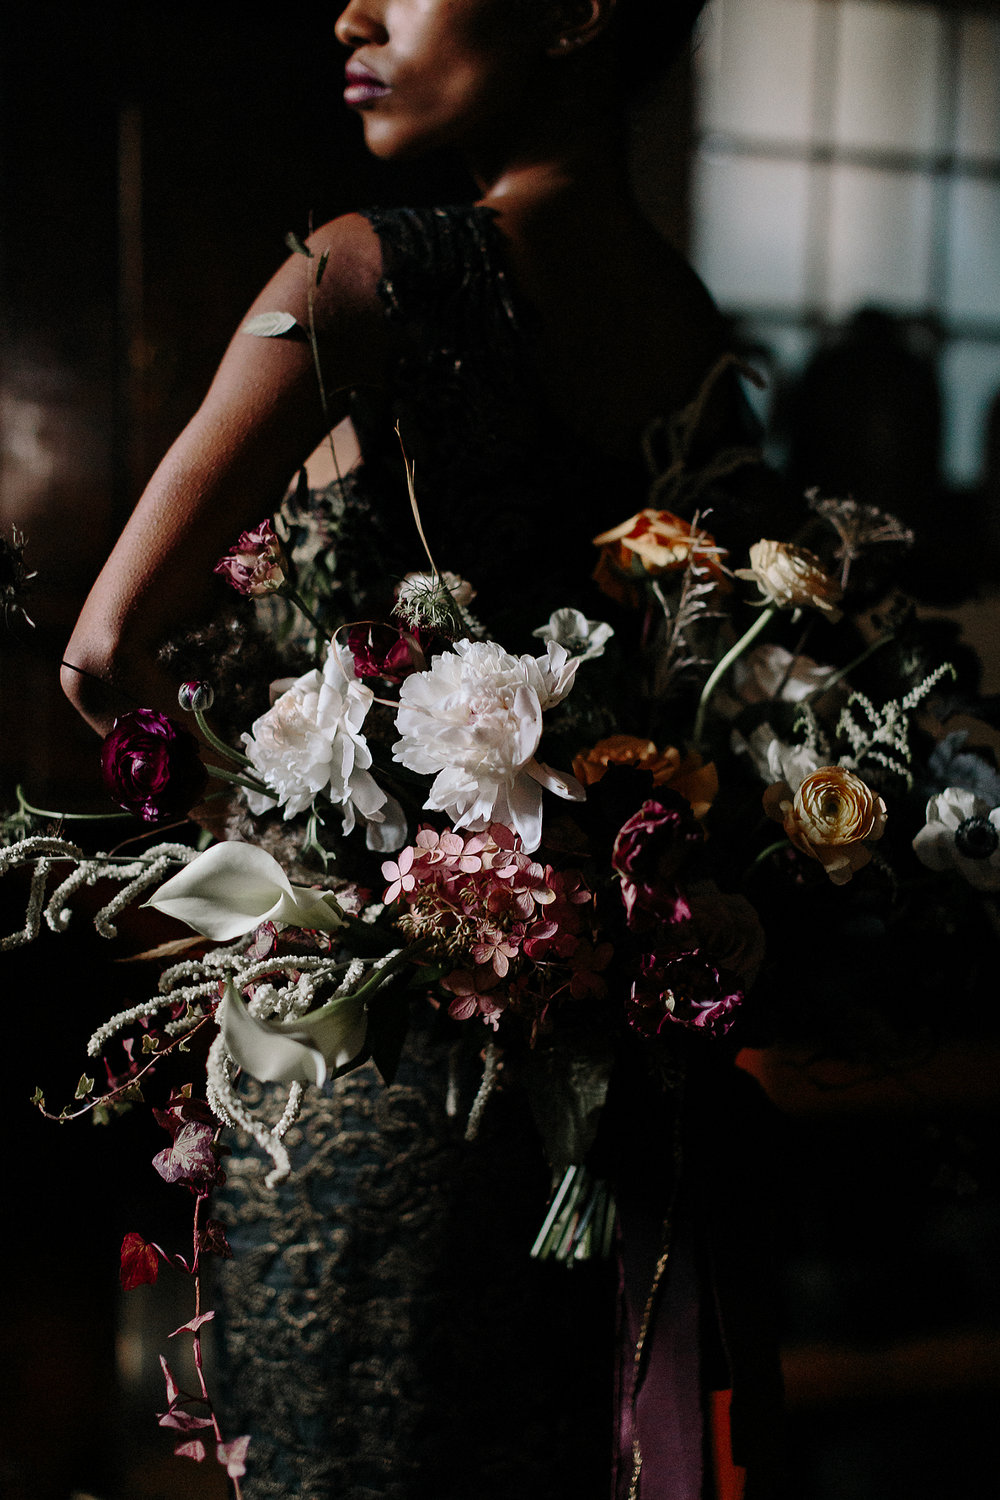 ryanne-hollies-photography-campbell-house-stylized-shoot-kitchen-cellar-moody-dark-dramatic-romantic-narces-gown-black-bride-stunning-inspiration-junebug-weddings-green-wedding-shoes.jpg